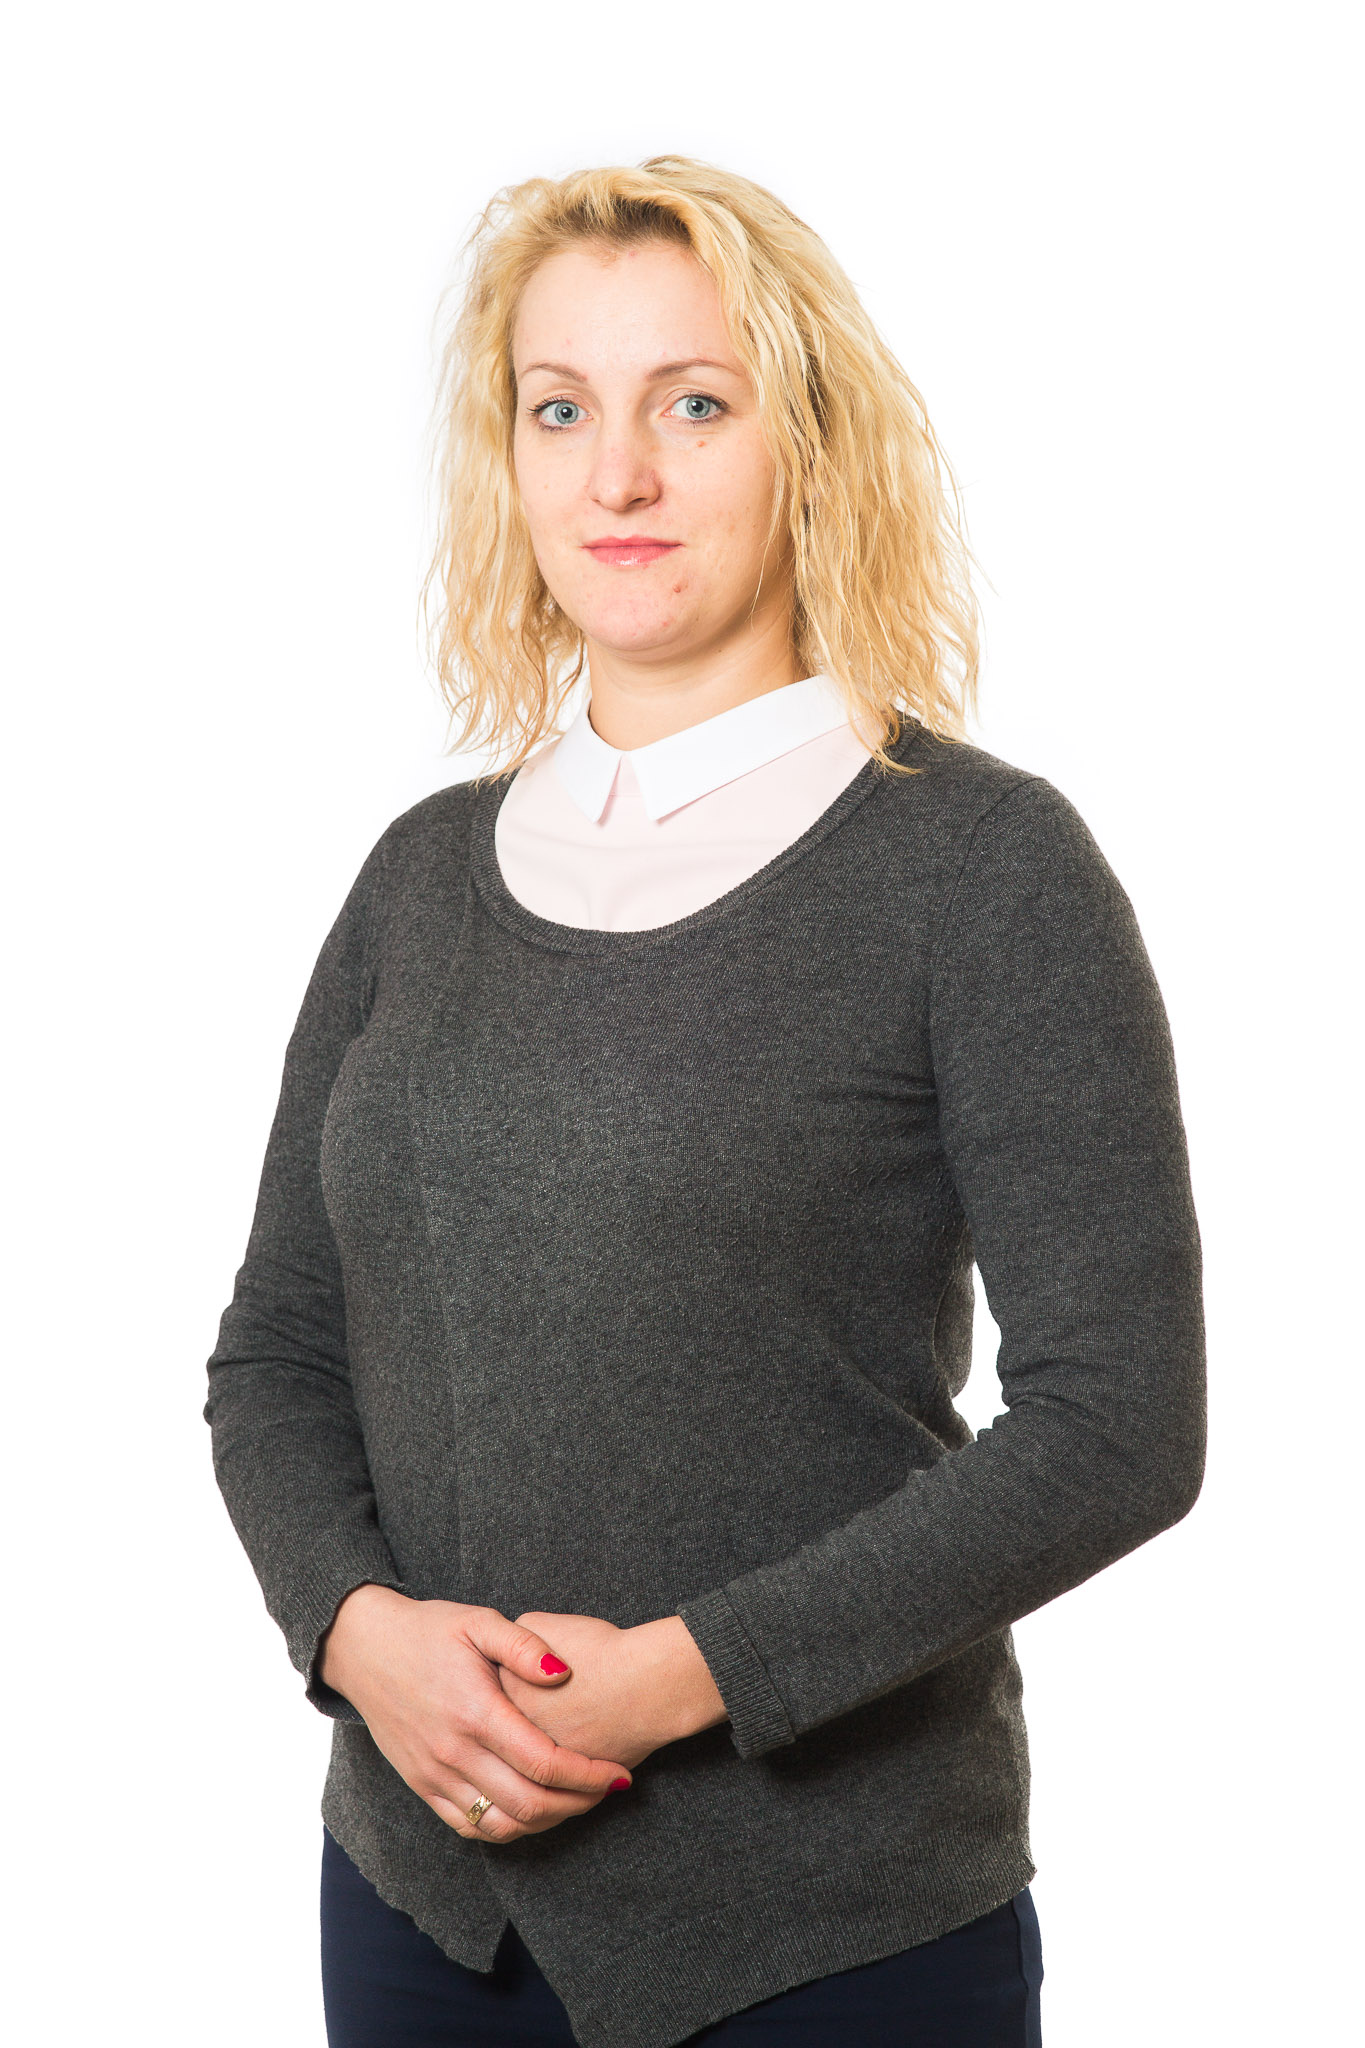 Beata Daraškevič Leinonen Accounting Manager